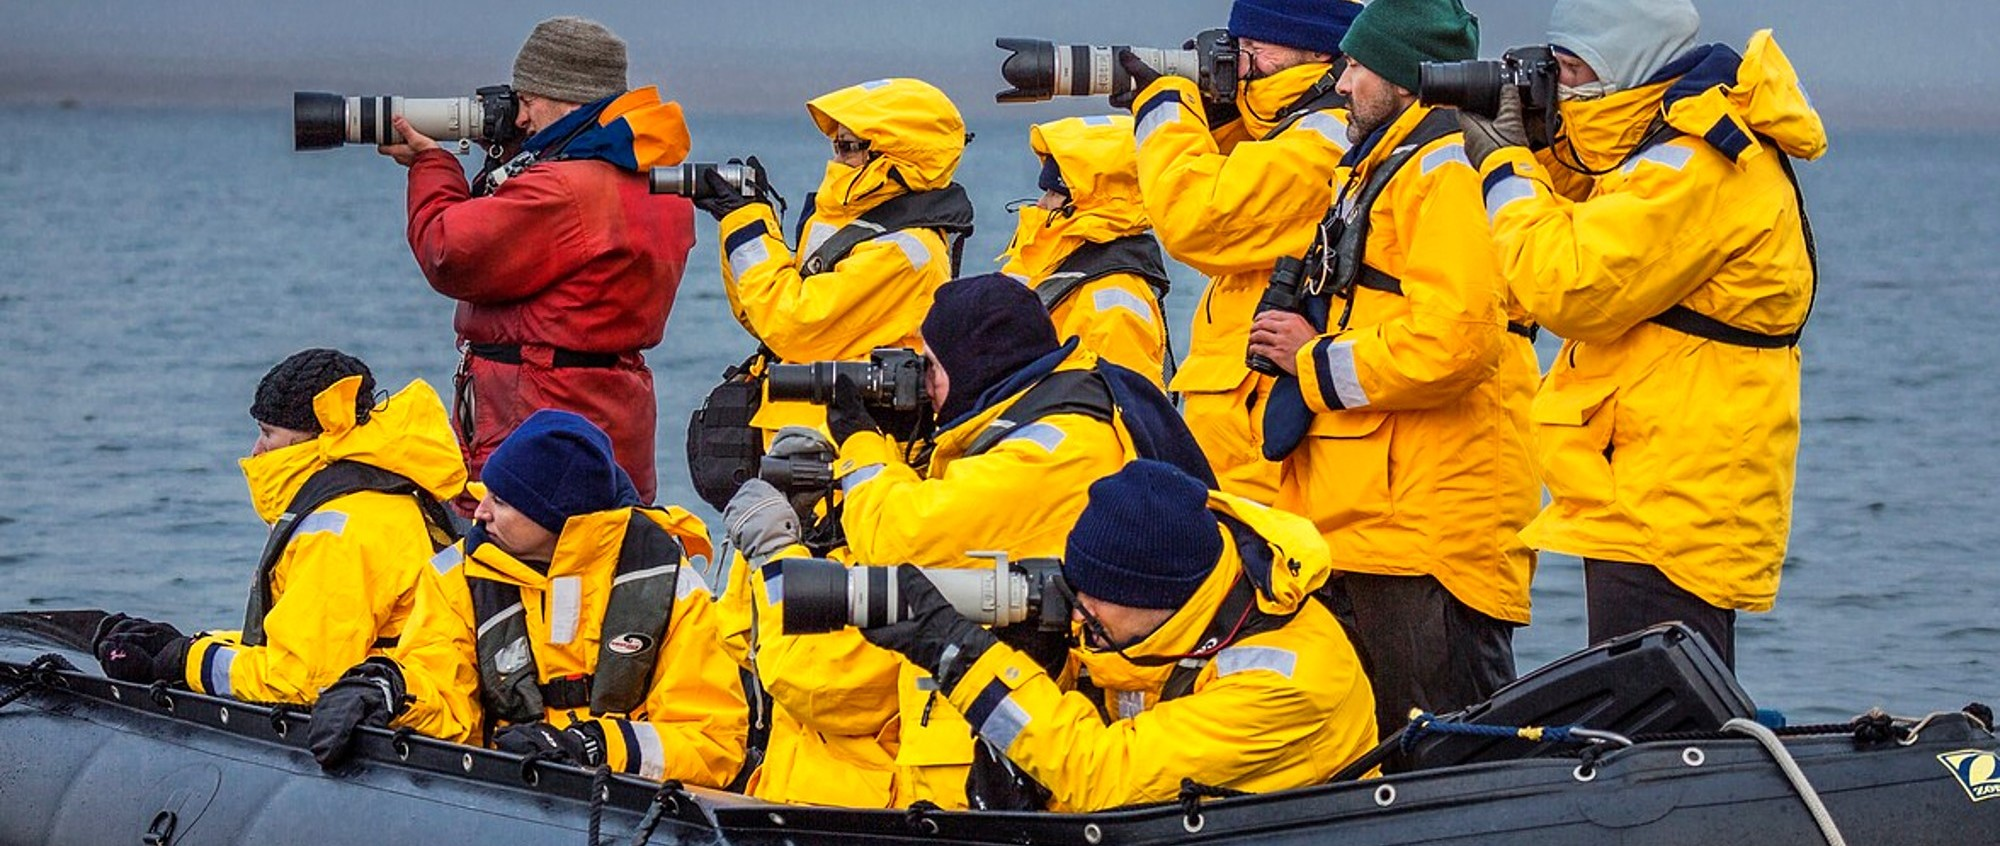 817-441501 ( Ragnar Th. Sigurdsson ) - Tourist in Zodiacs watching and photographing polar bears, Svalbard, Norway.